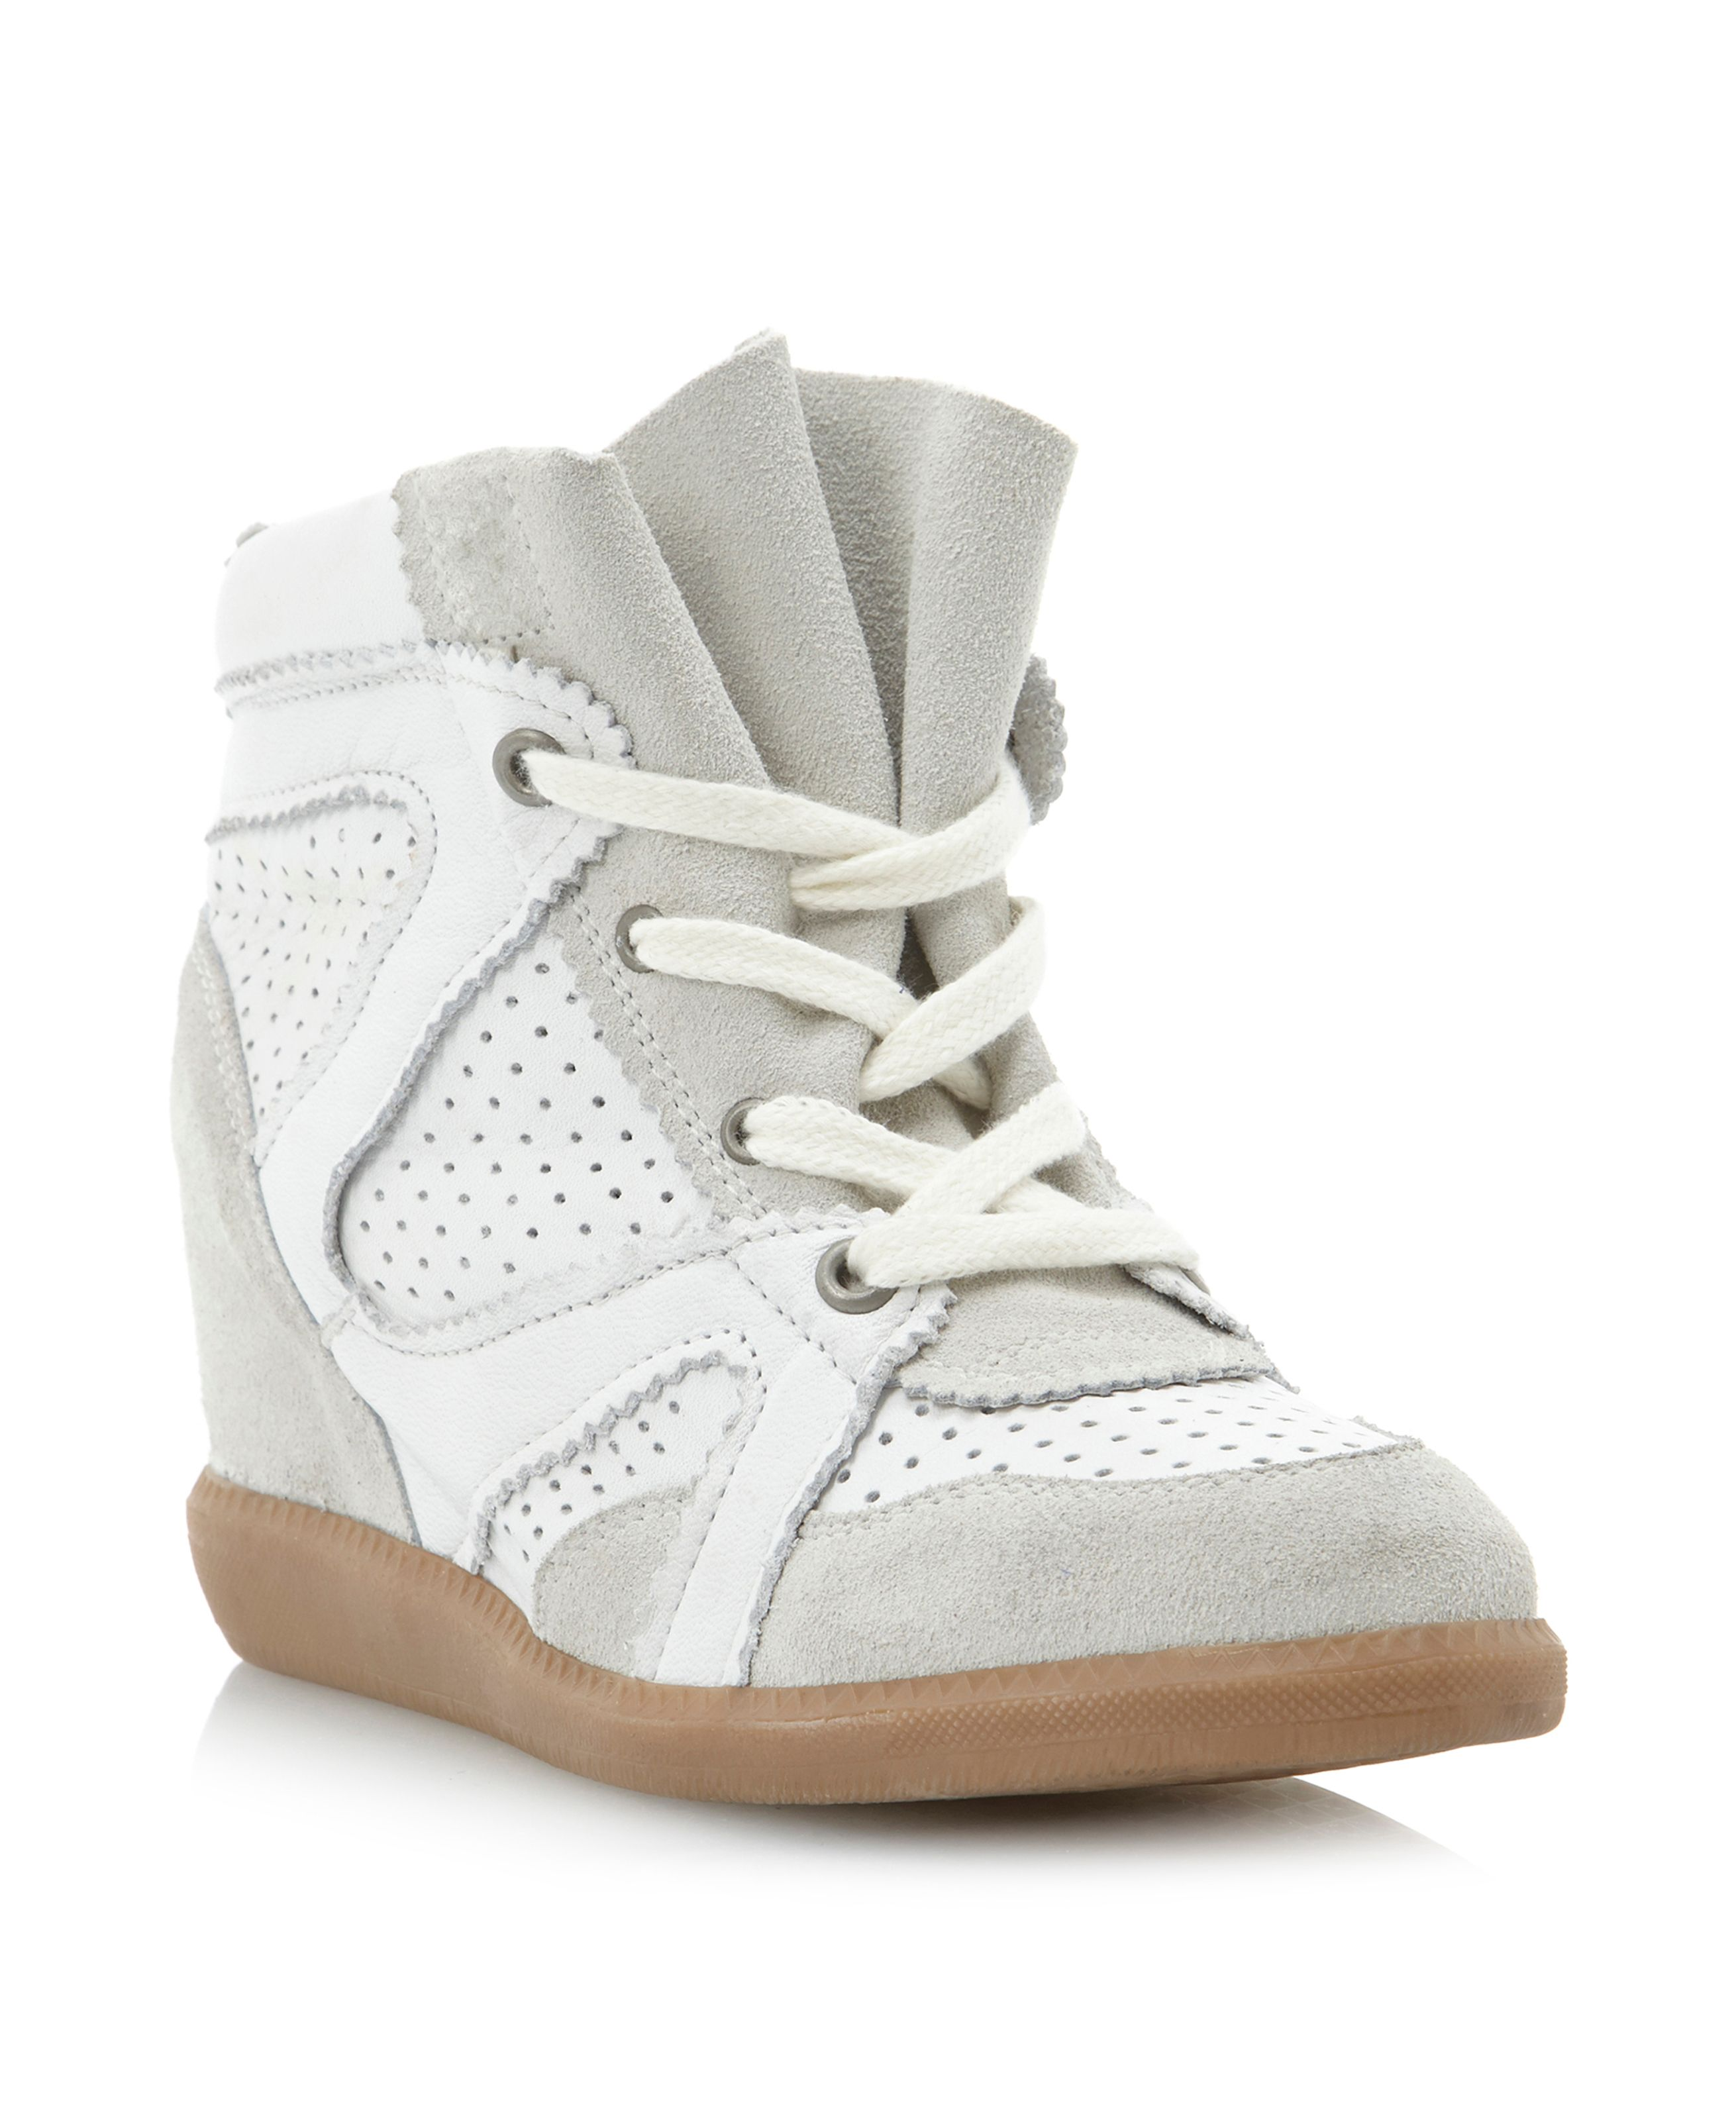 Pamelia wedge trainer shoes